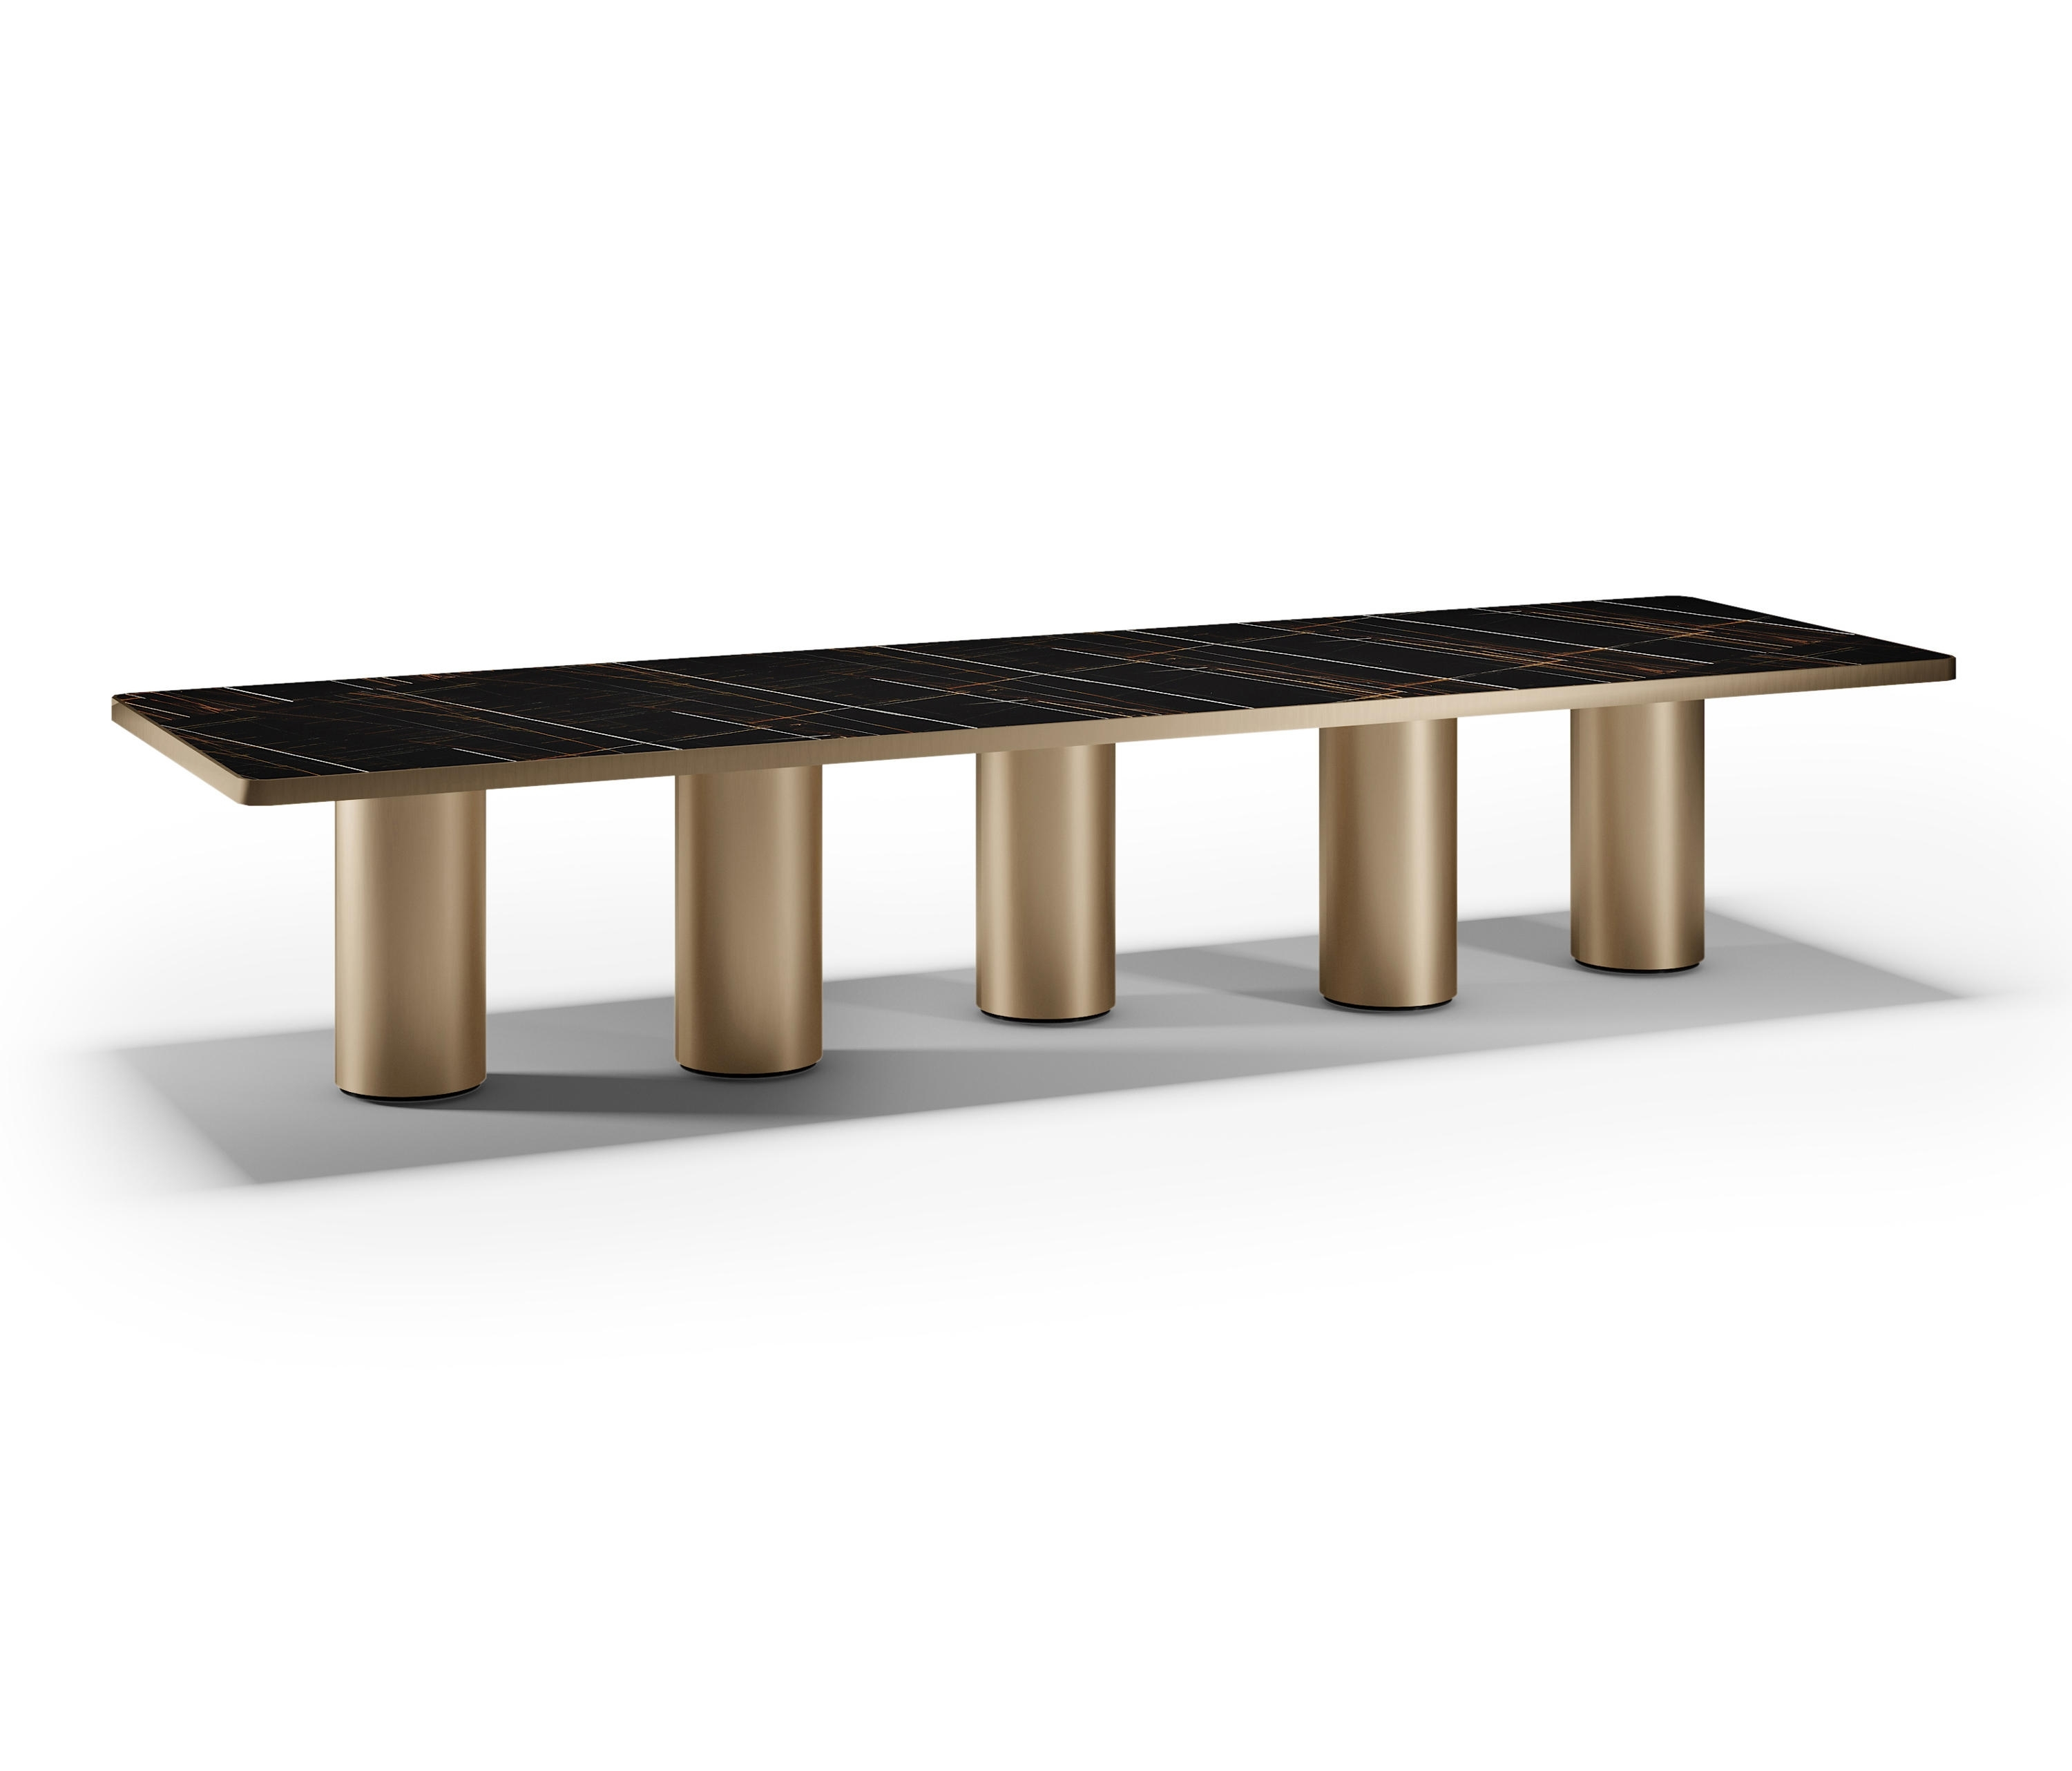 Signore Degli Anelli 72 Steel – Dining Tables From Reflex | Architonic For Most Recently Released Palazzo Rectangle Dining Tables (View 20 of 20)